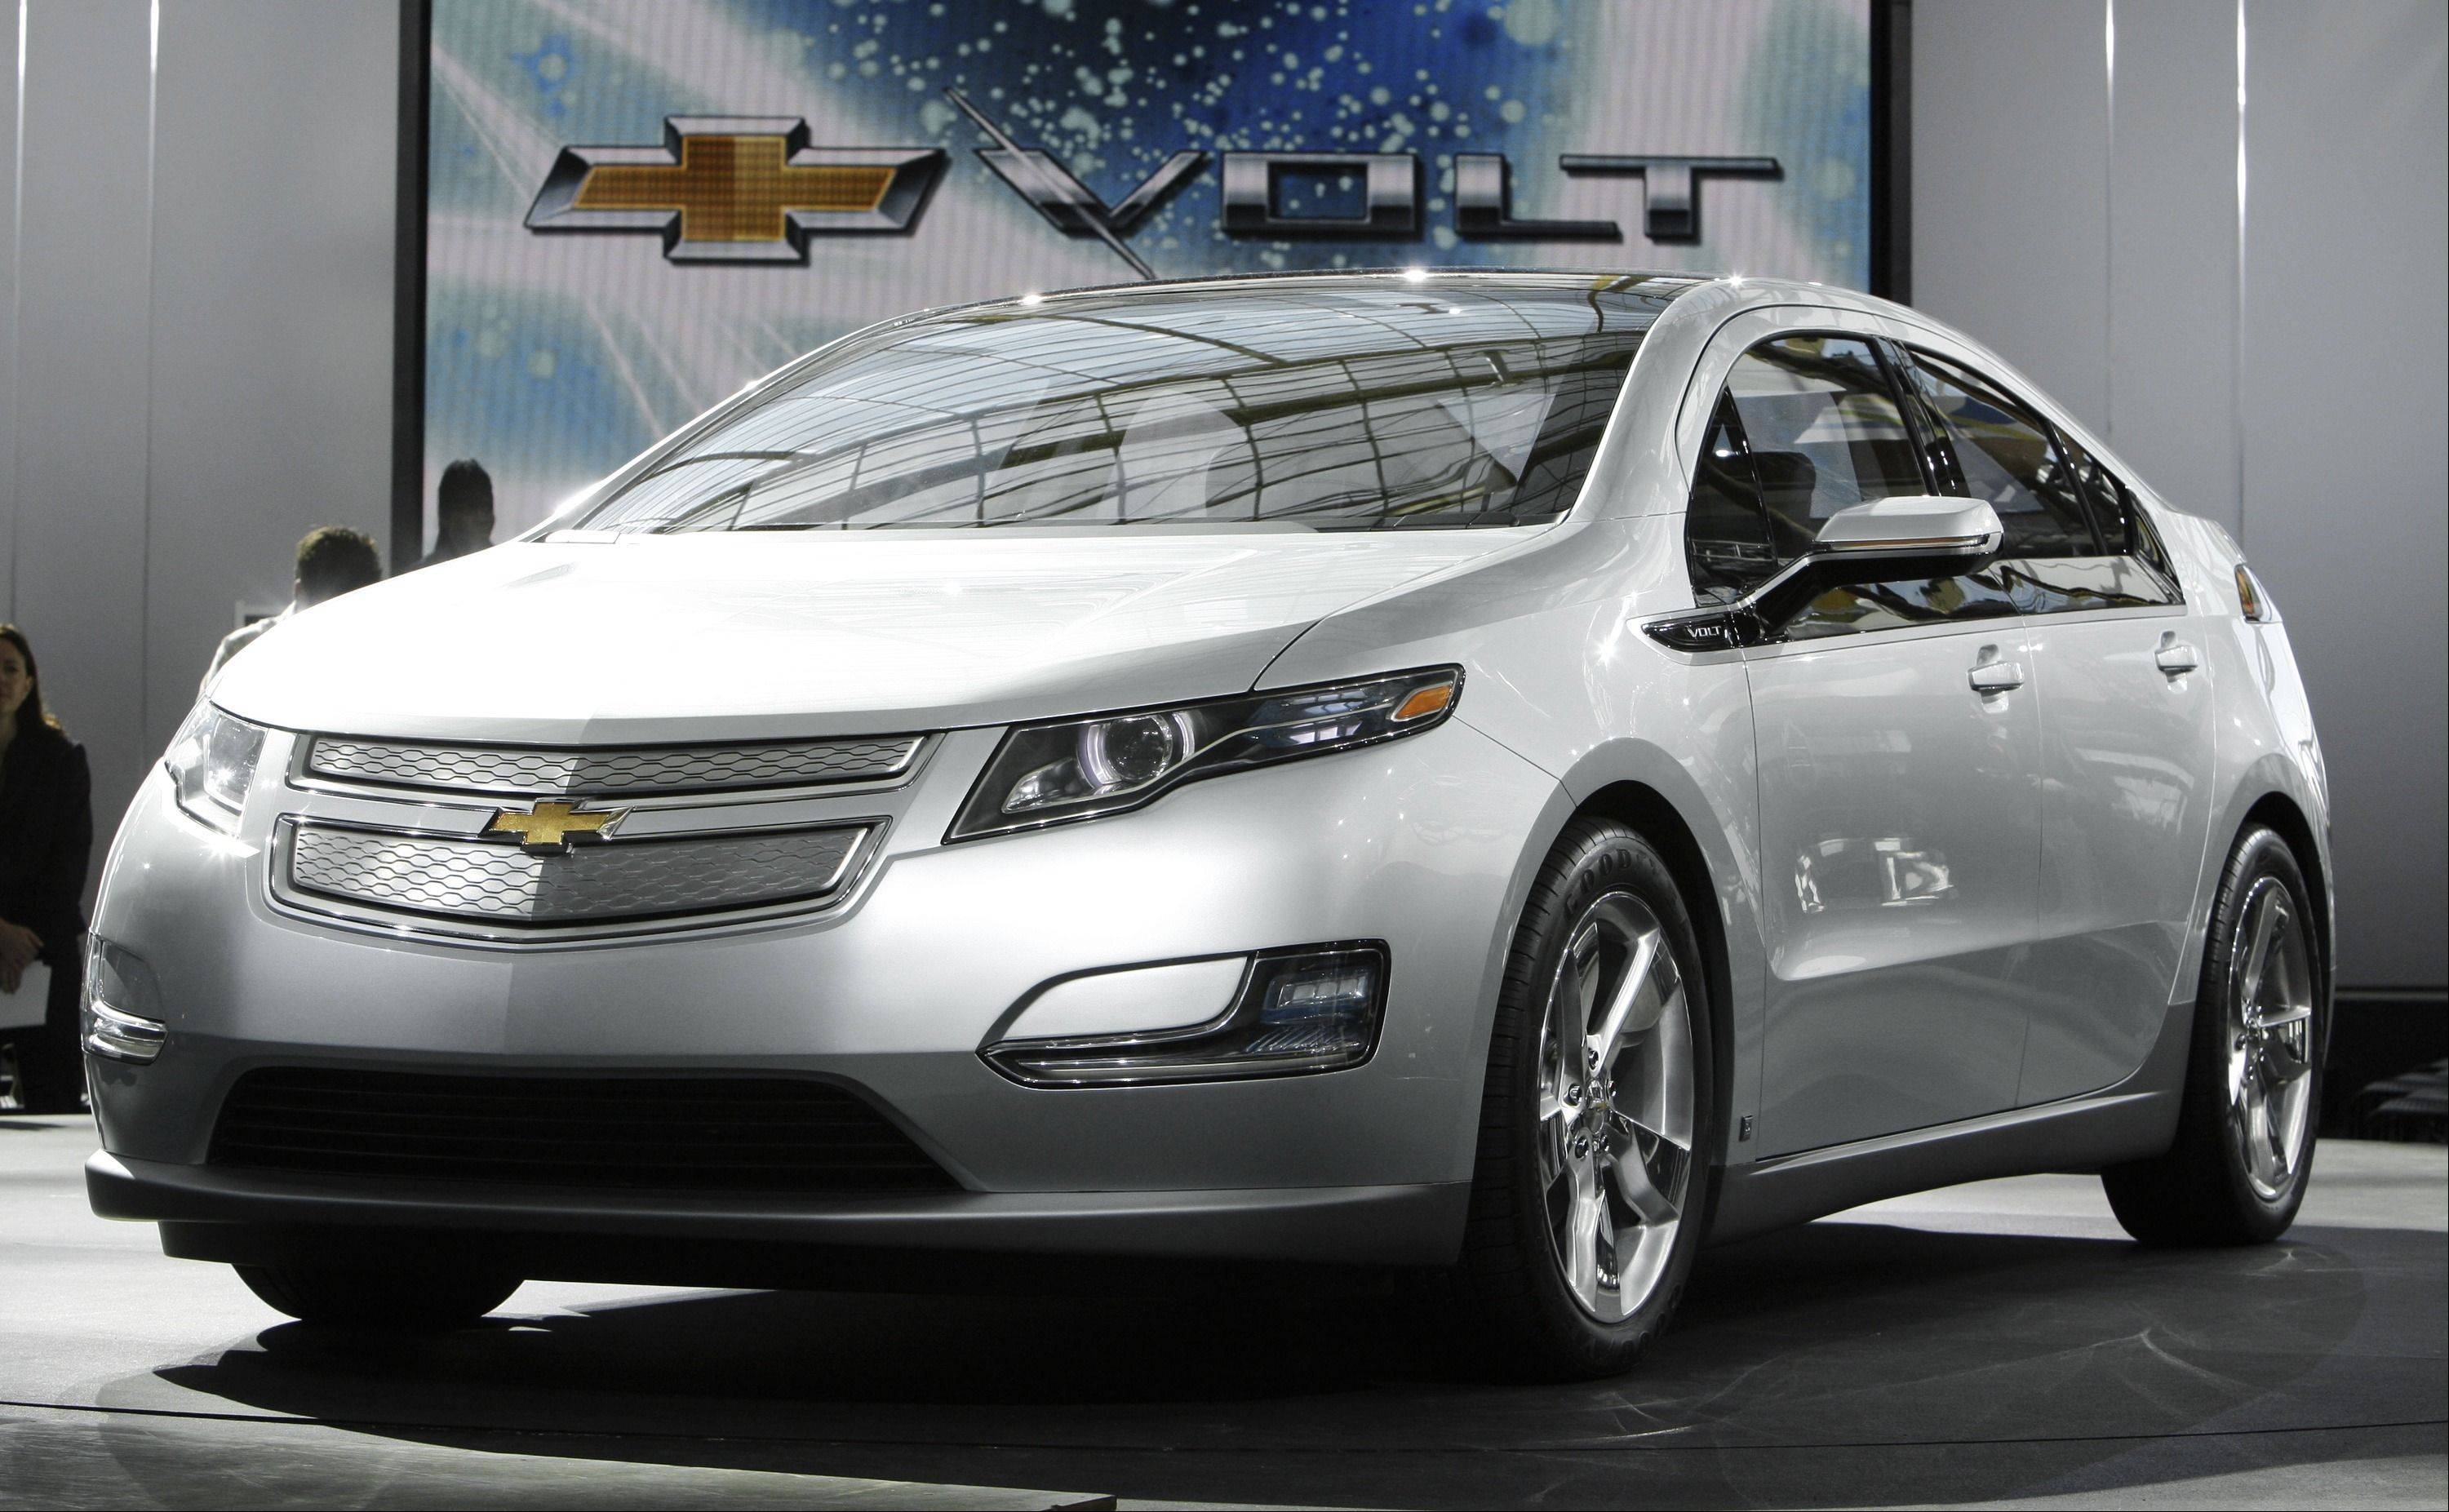 General Motors is knocking 12.5 percent off the Chevrolet Volt's sticker price as it tries to better compete with electric car rivals.